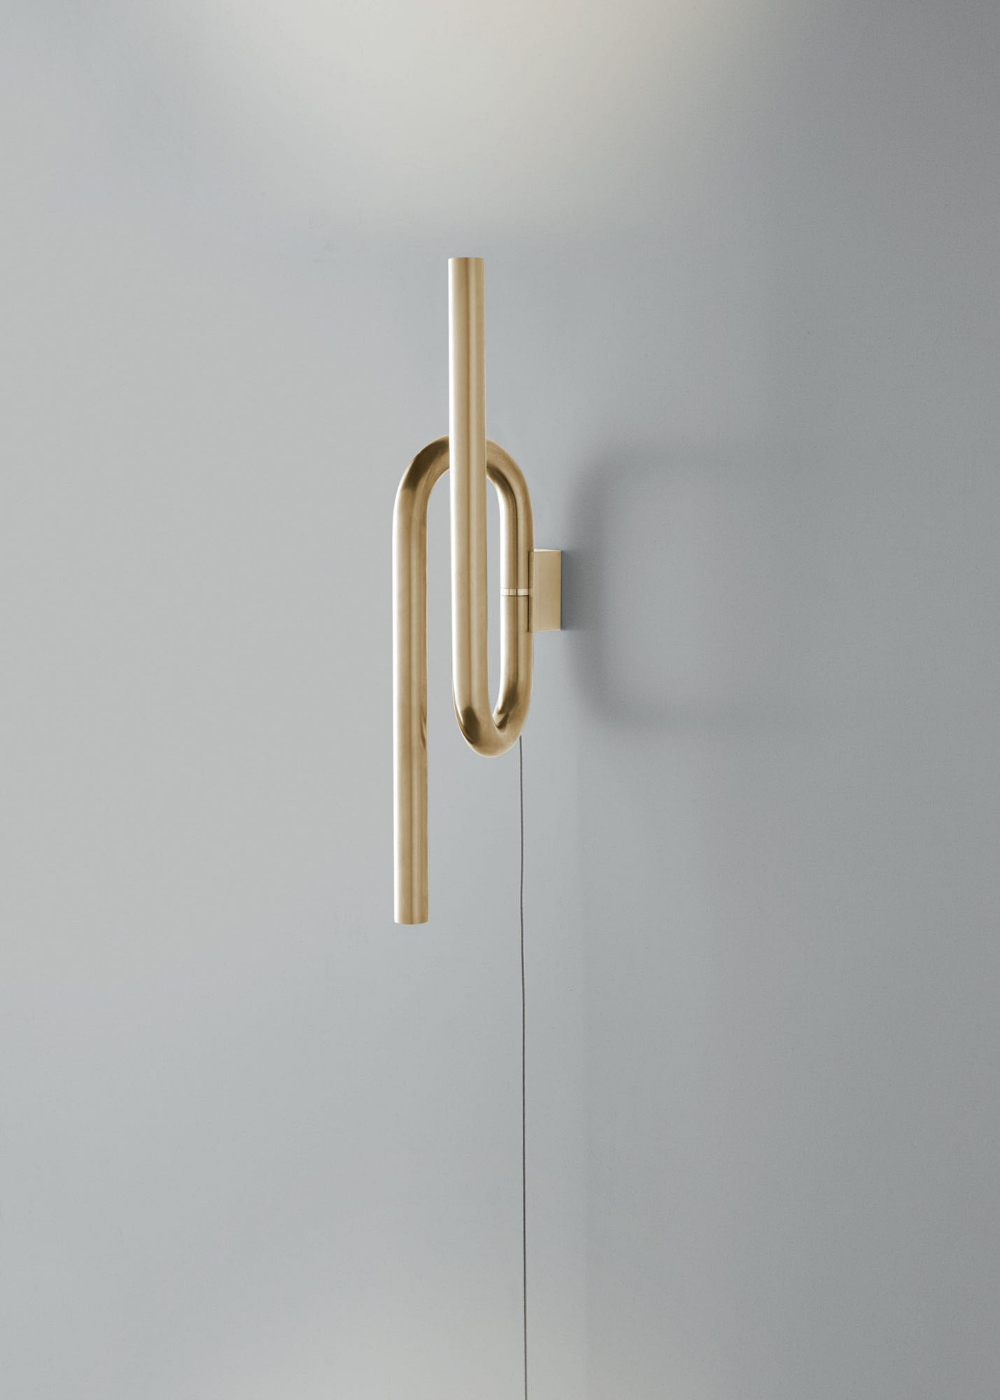 Best New Lighting From Euroluce 2019 Yellowtrace In 2020 Wall Lights Lamp Design Wall Lamp